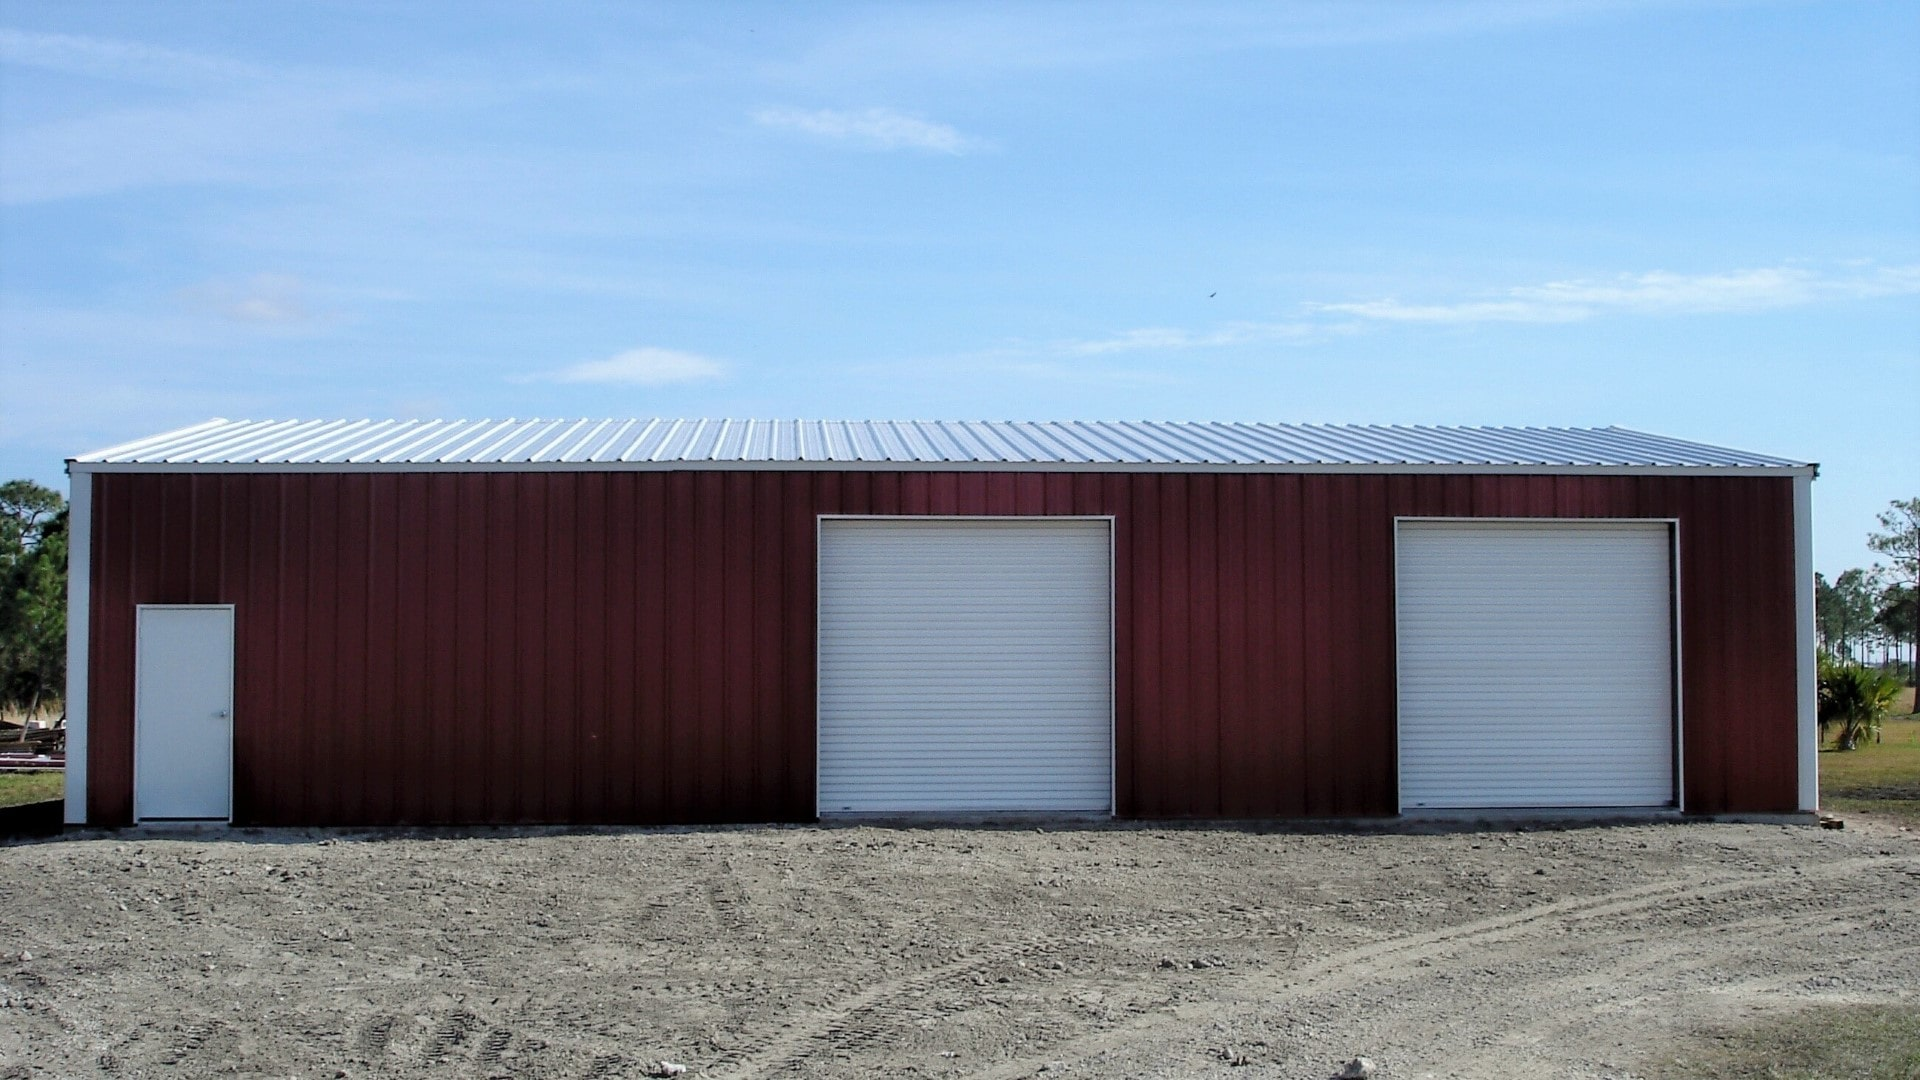 Red metal building with white trim, walk door, and 3 rollup doors. View of front sidewall.